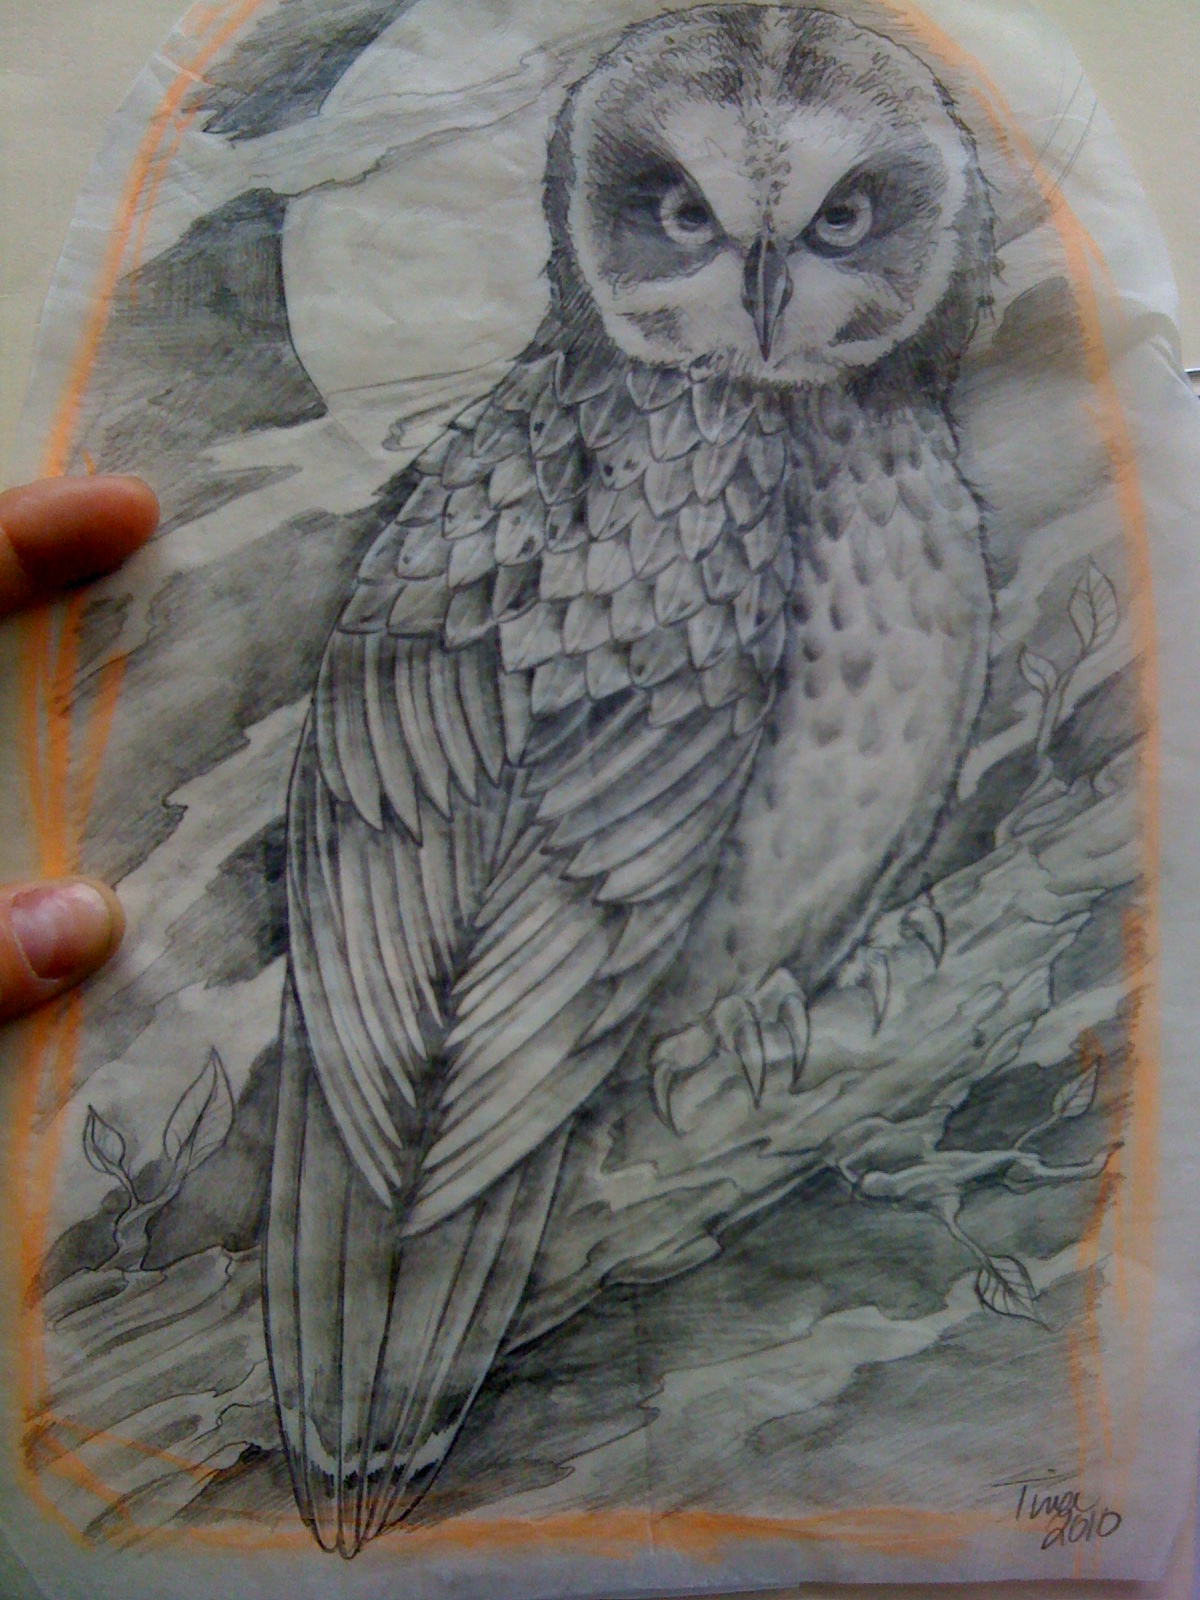 Best tatto design woot woot for Oif tattoo designs